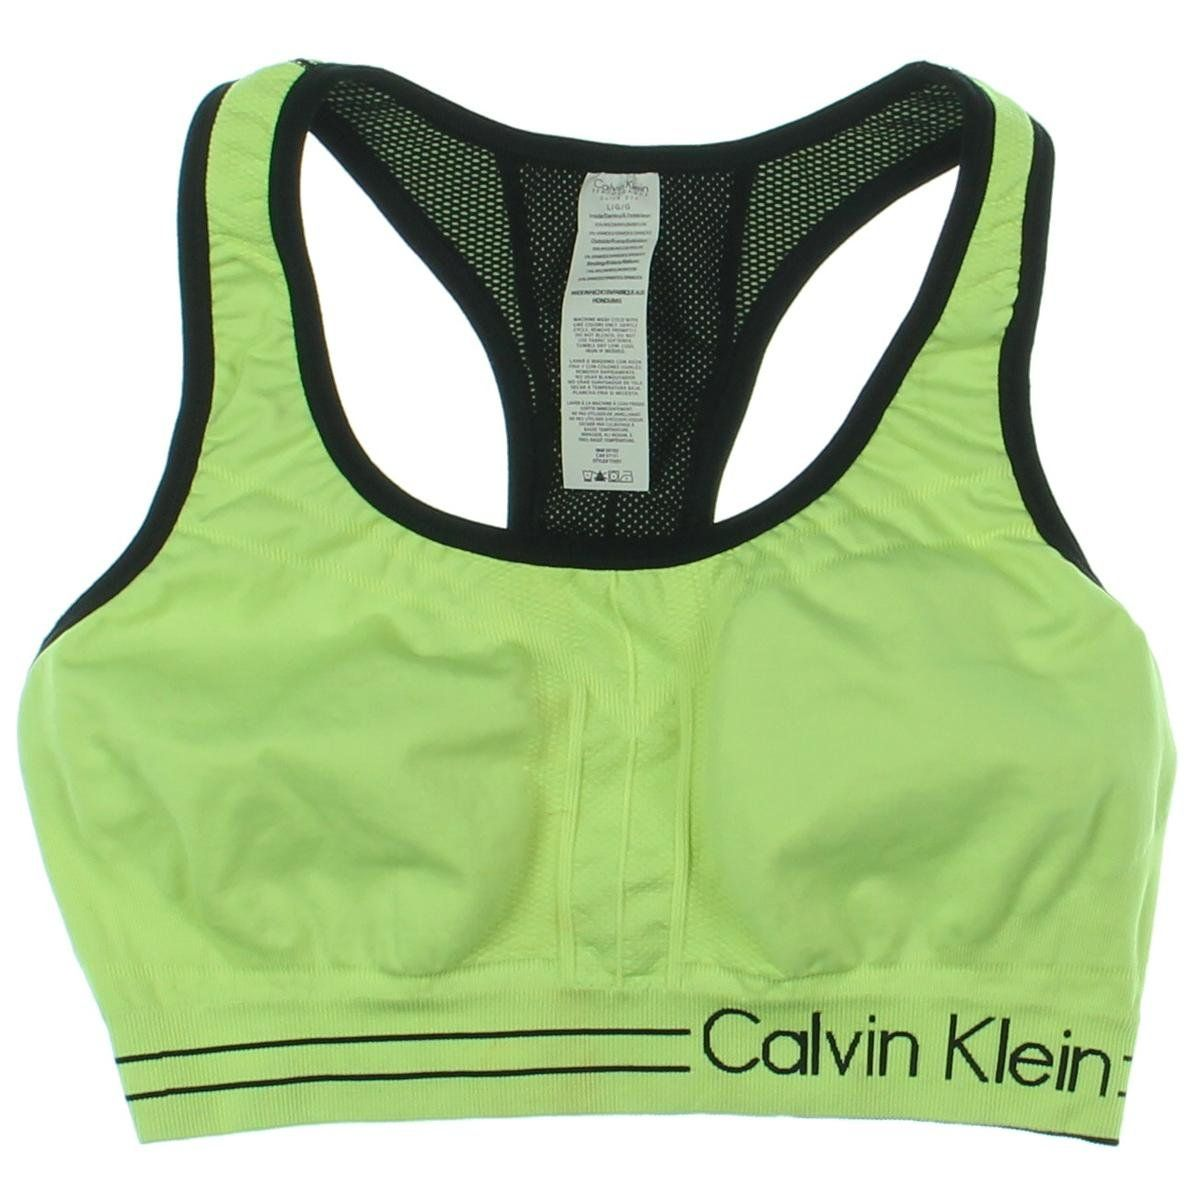 Calvin Klein Performance Womens Perforated Moisture Wicking Sports ...